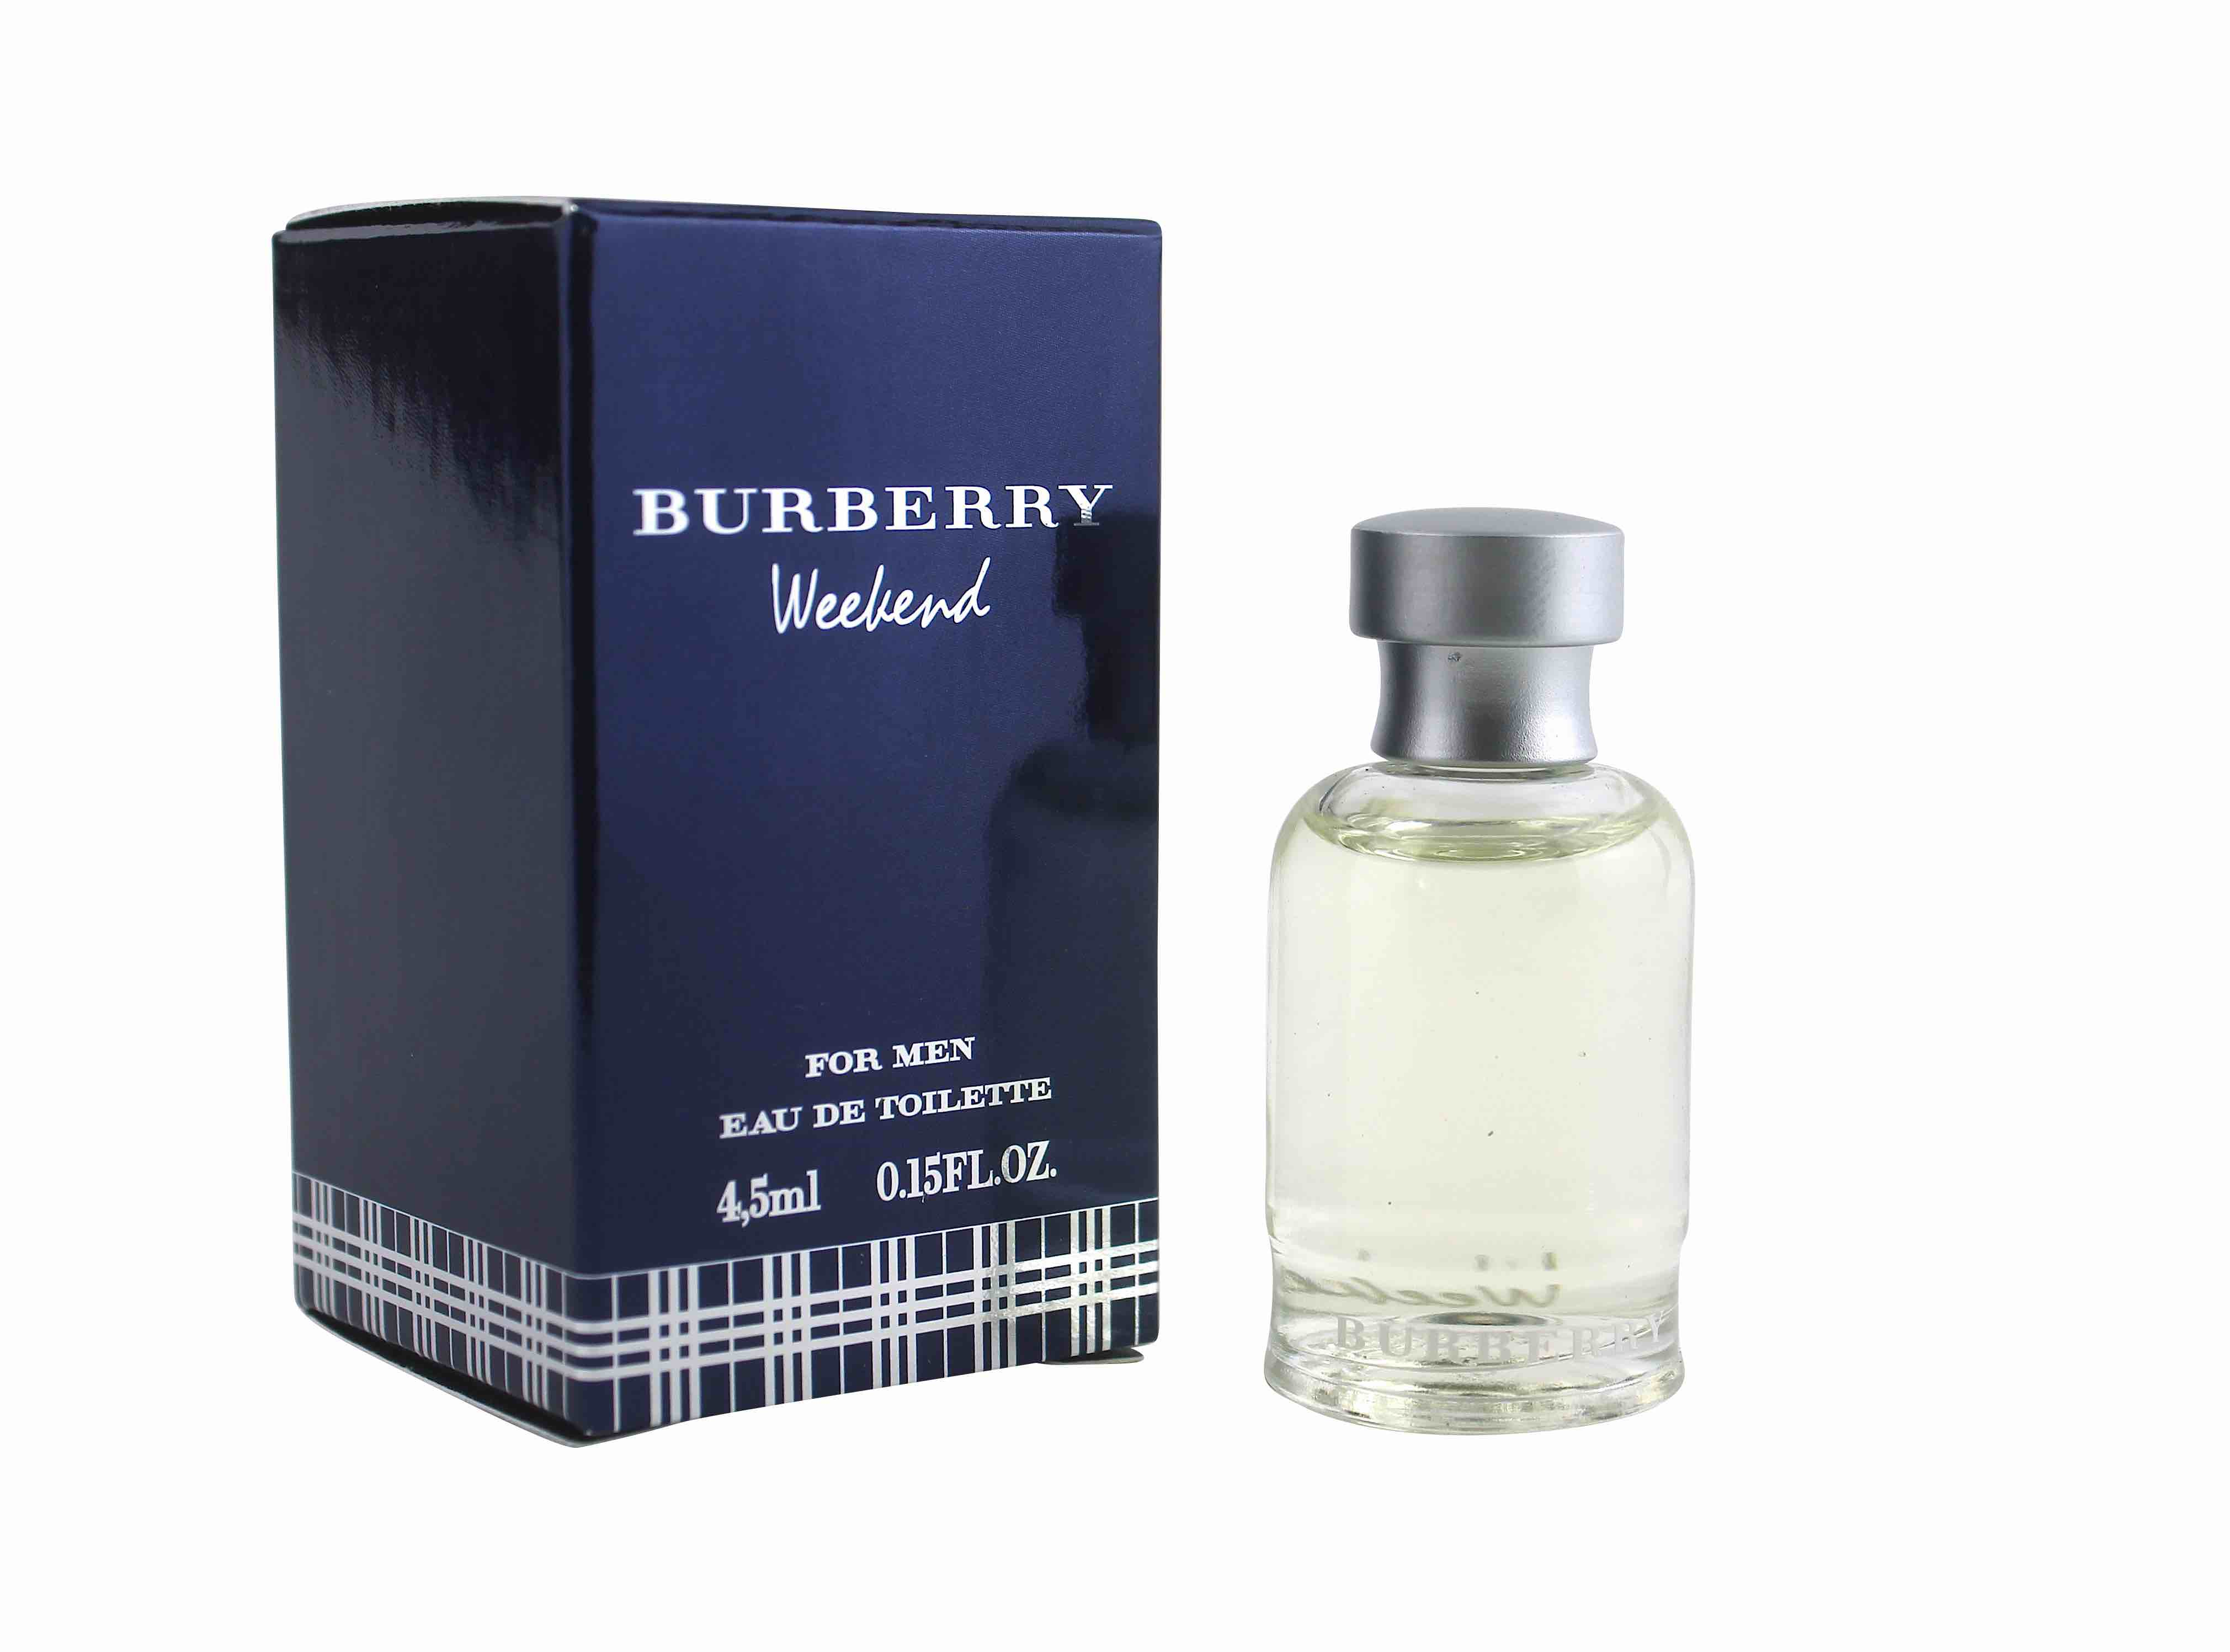 http://shopdep24h.com/images/nuoc-hoa-nam-mini/burberry-weekend-for-men-45ml/bur-wee-4.5ml-m.jpg